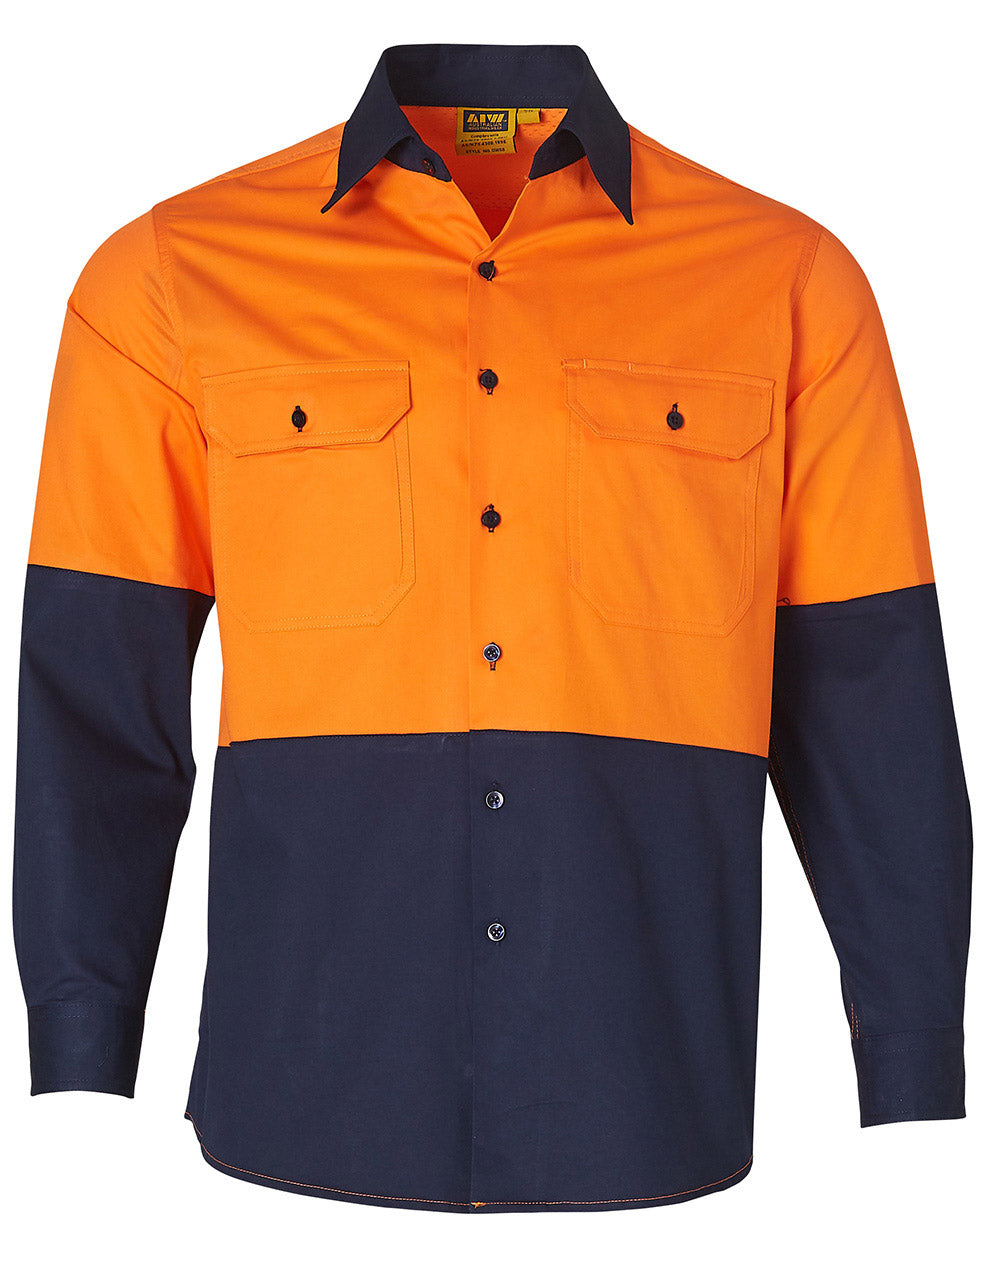 SW58 LONG SLEEVE SAFETY SHIRT